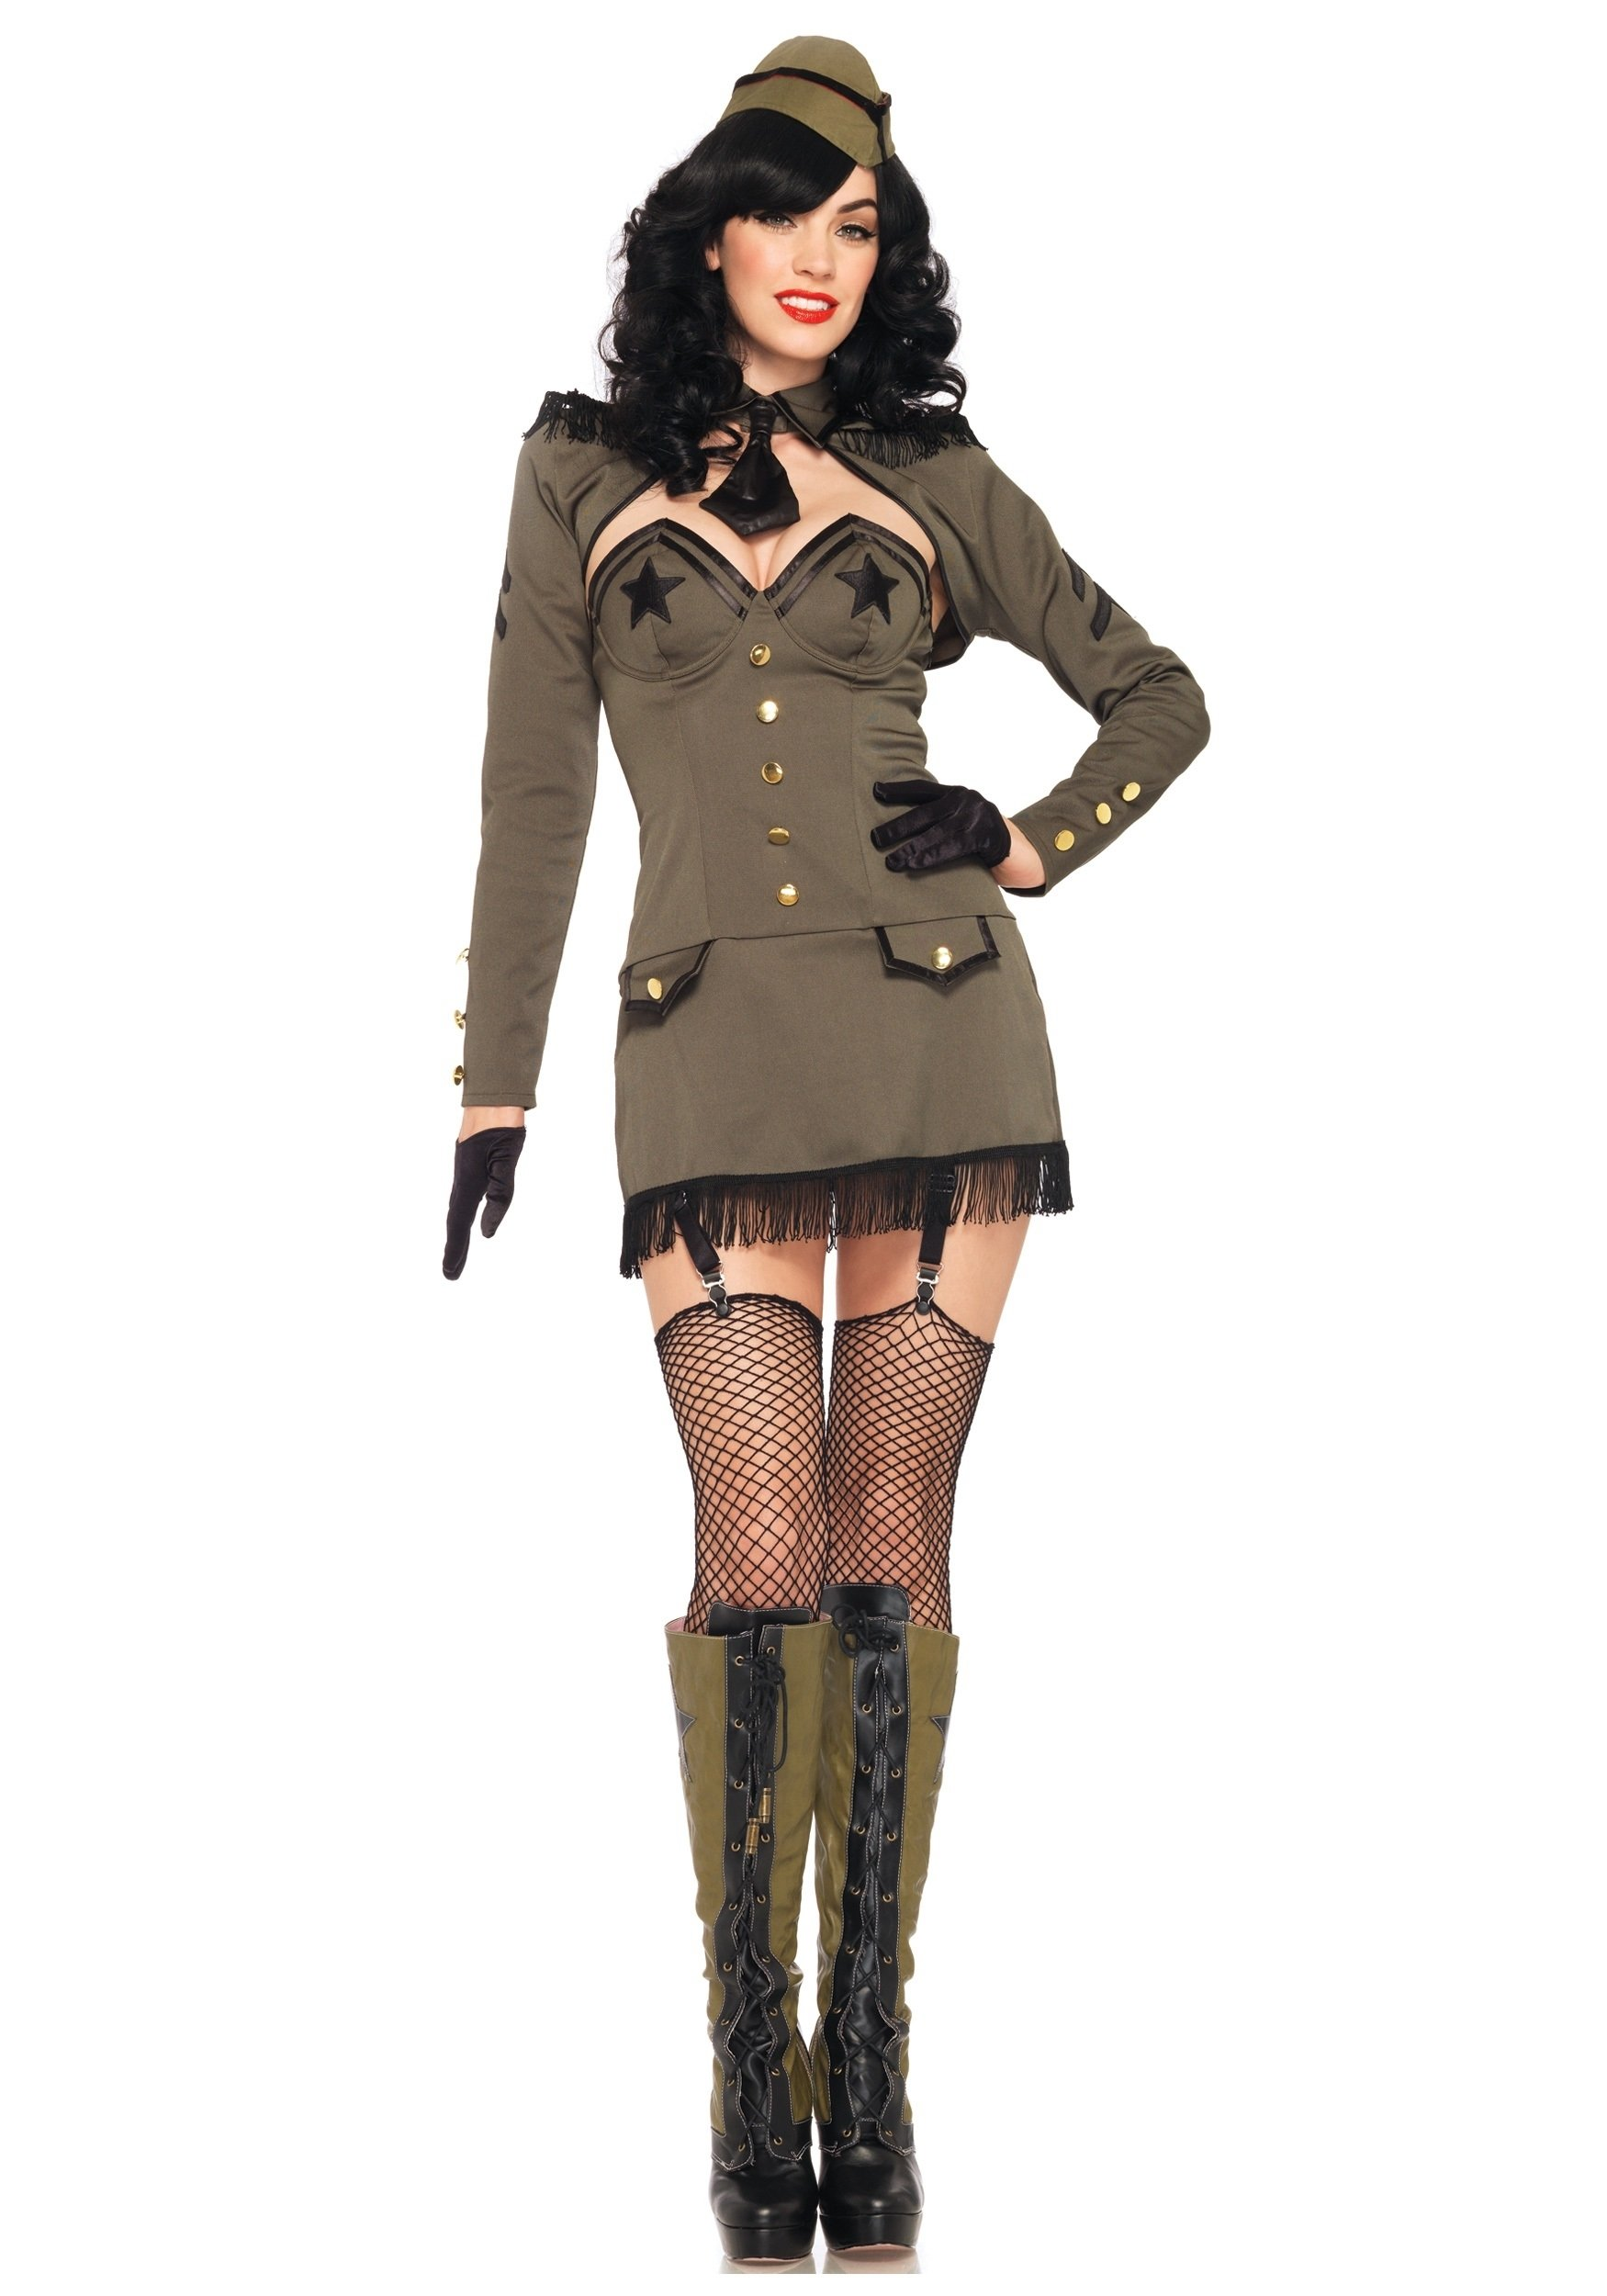 10 Nice Pin Up Girl Halloween Costume Ideas pin up army girl costume halloween costumes 2020